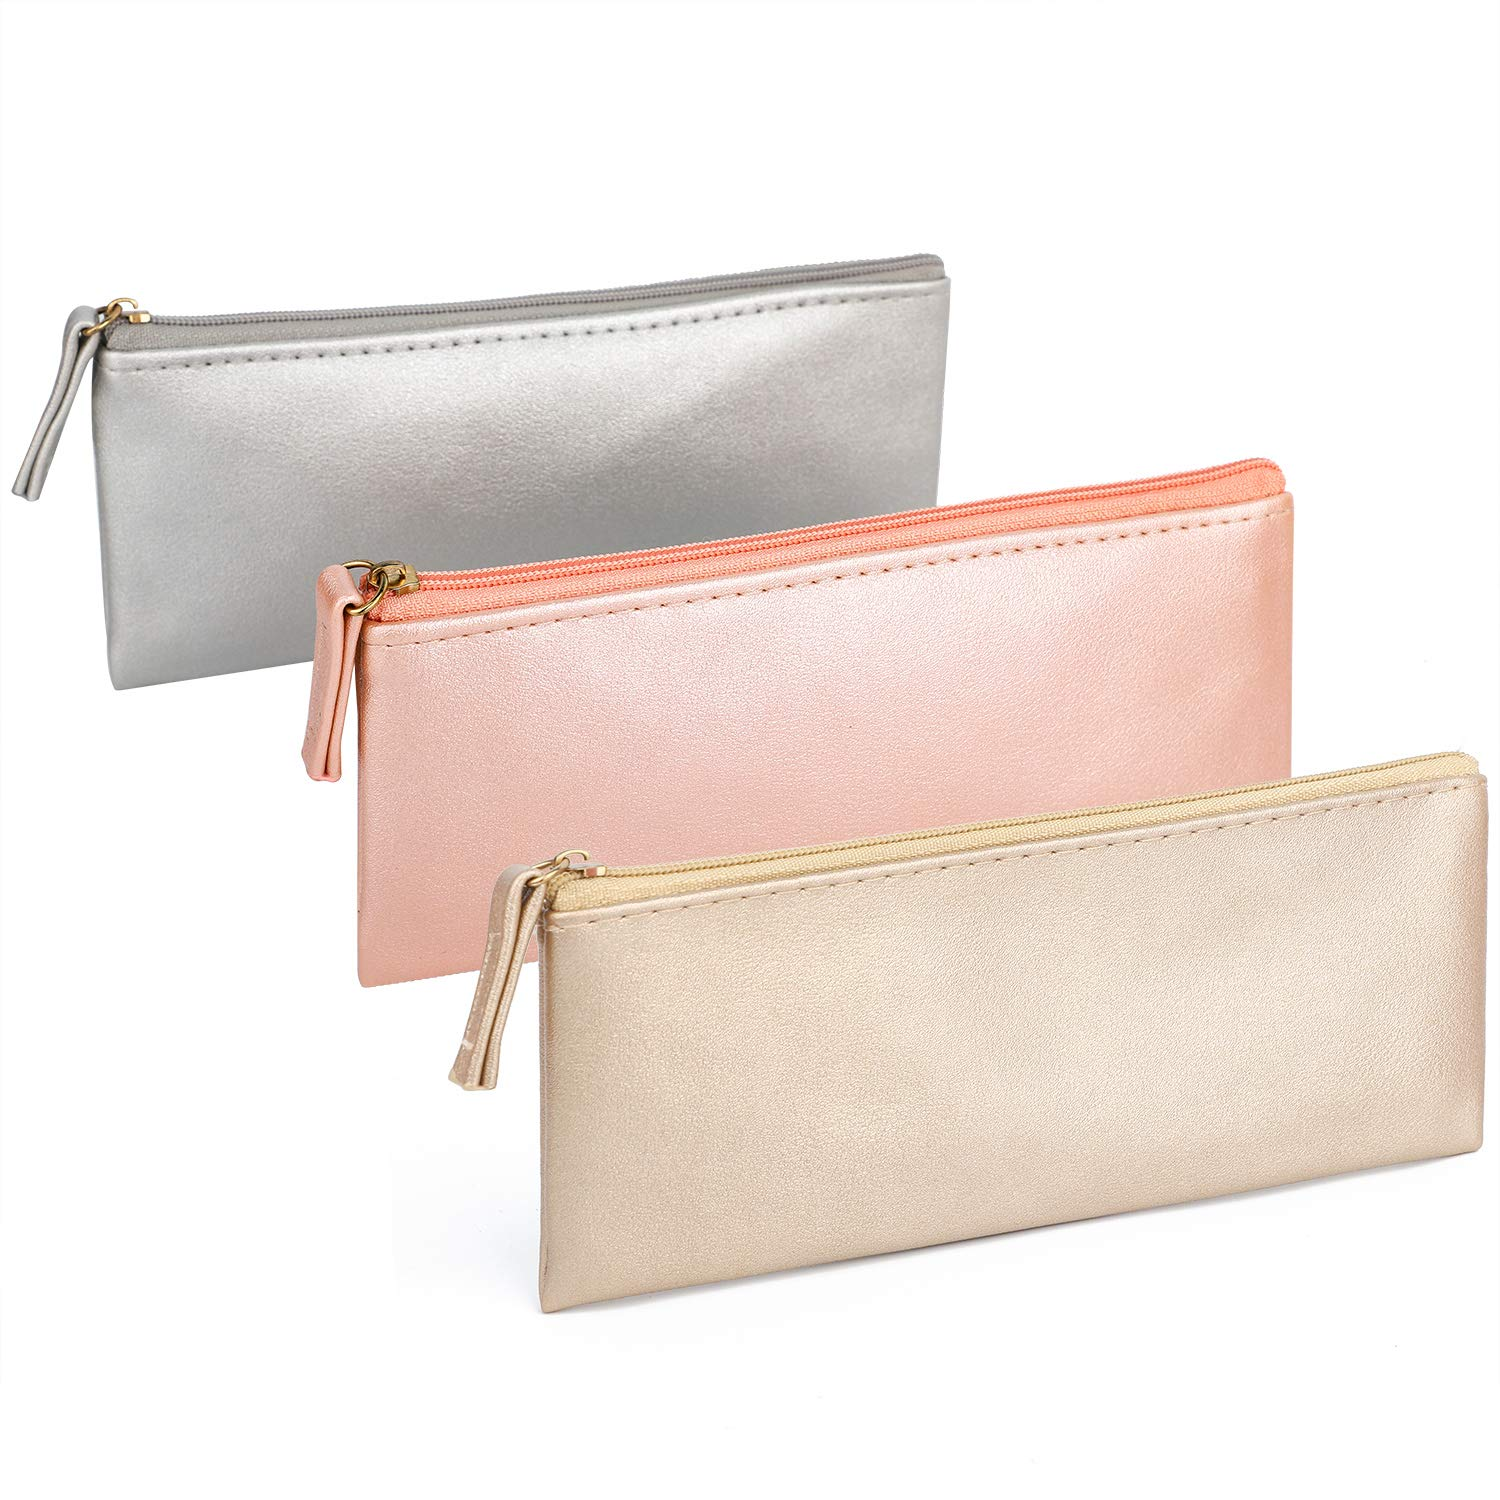 SumDirect 3Pcs Small Pencil Bag Pen Case, PU Leather Cosmetic Makeup Bag Pen Pencil Stationery Pouch Bag Case for Pens, Pencils, Eraser and Markers(Pink+Gold+Silver)